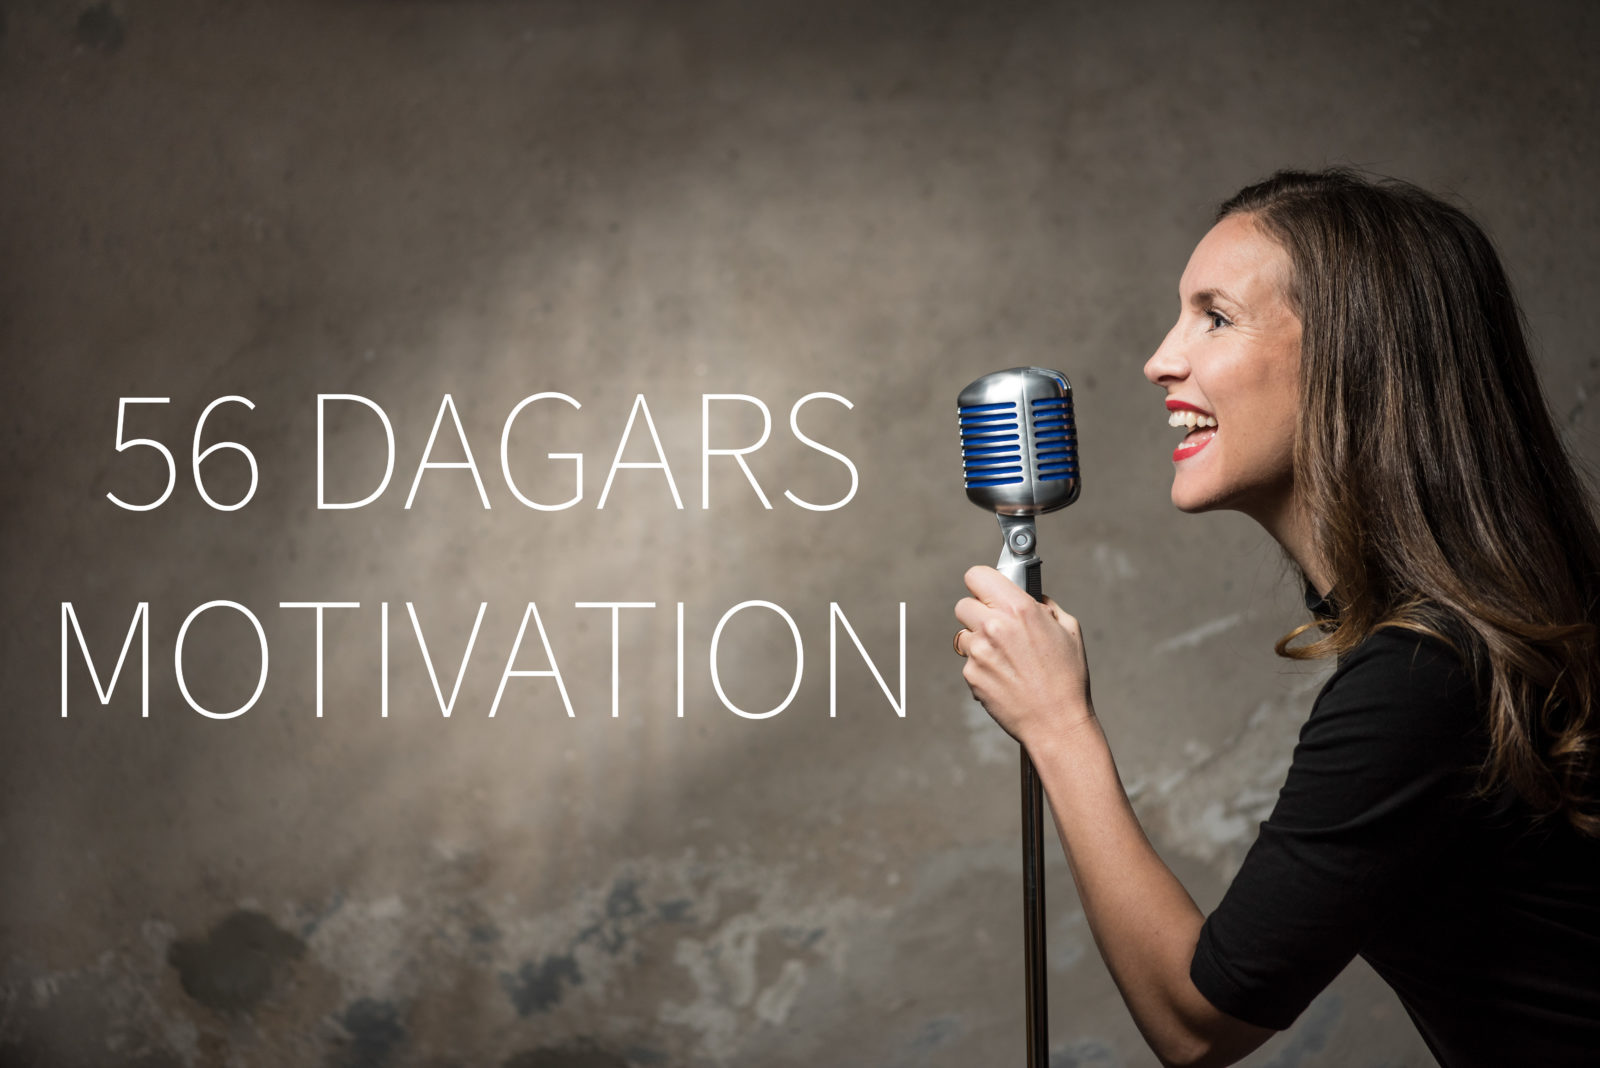 56 dagars motivation - En sångkurs